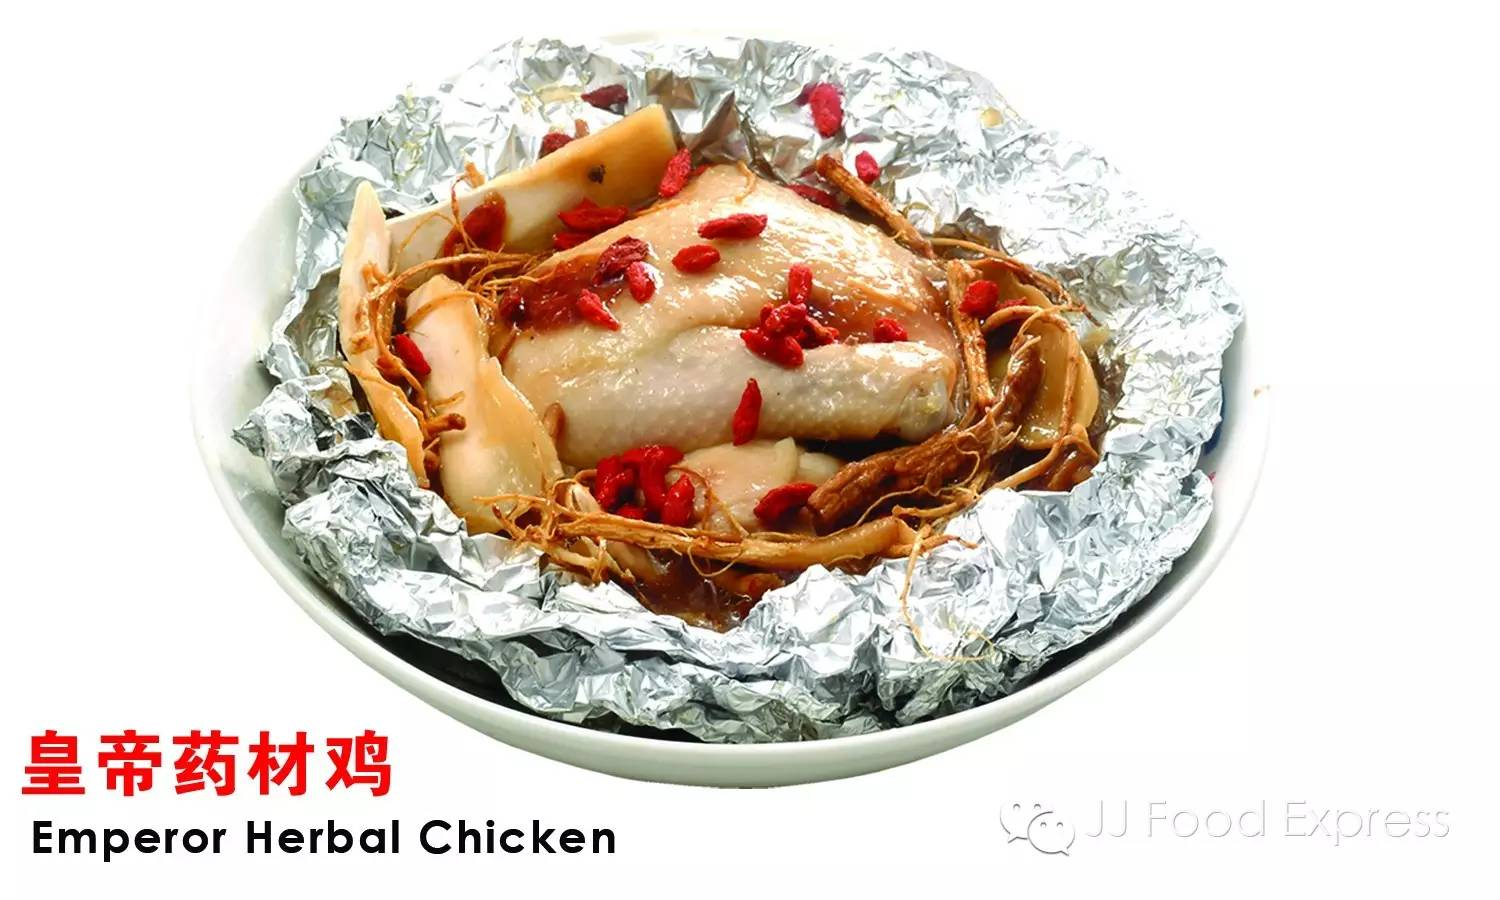 emperor herbal chicken